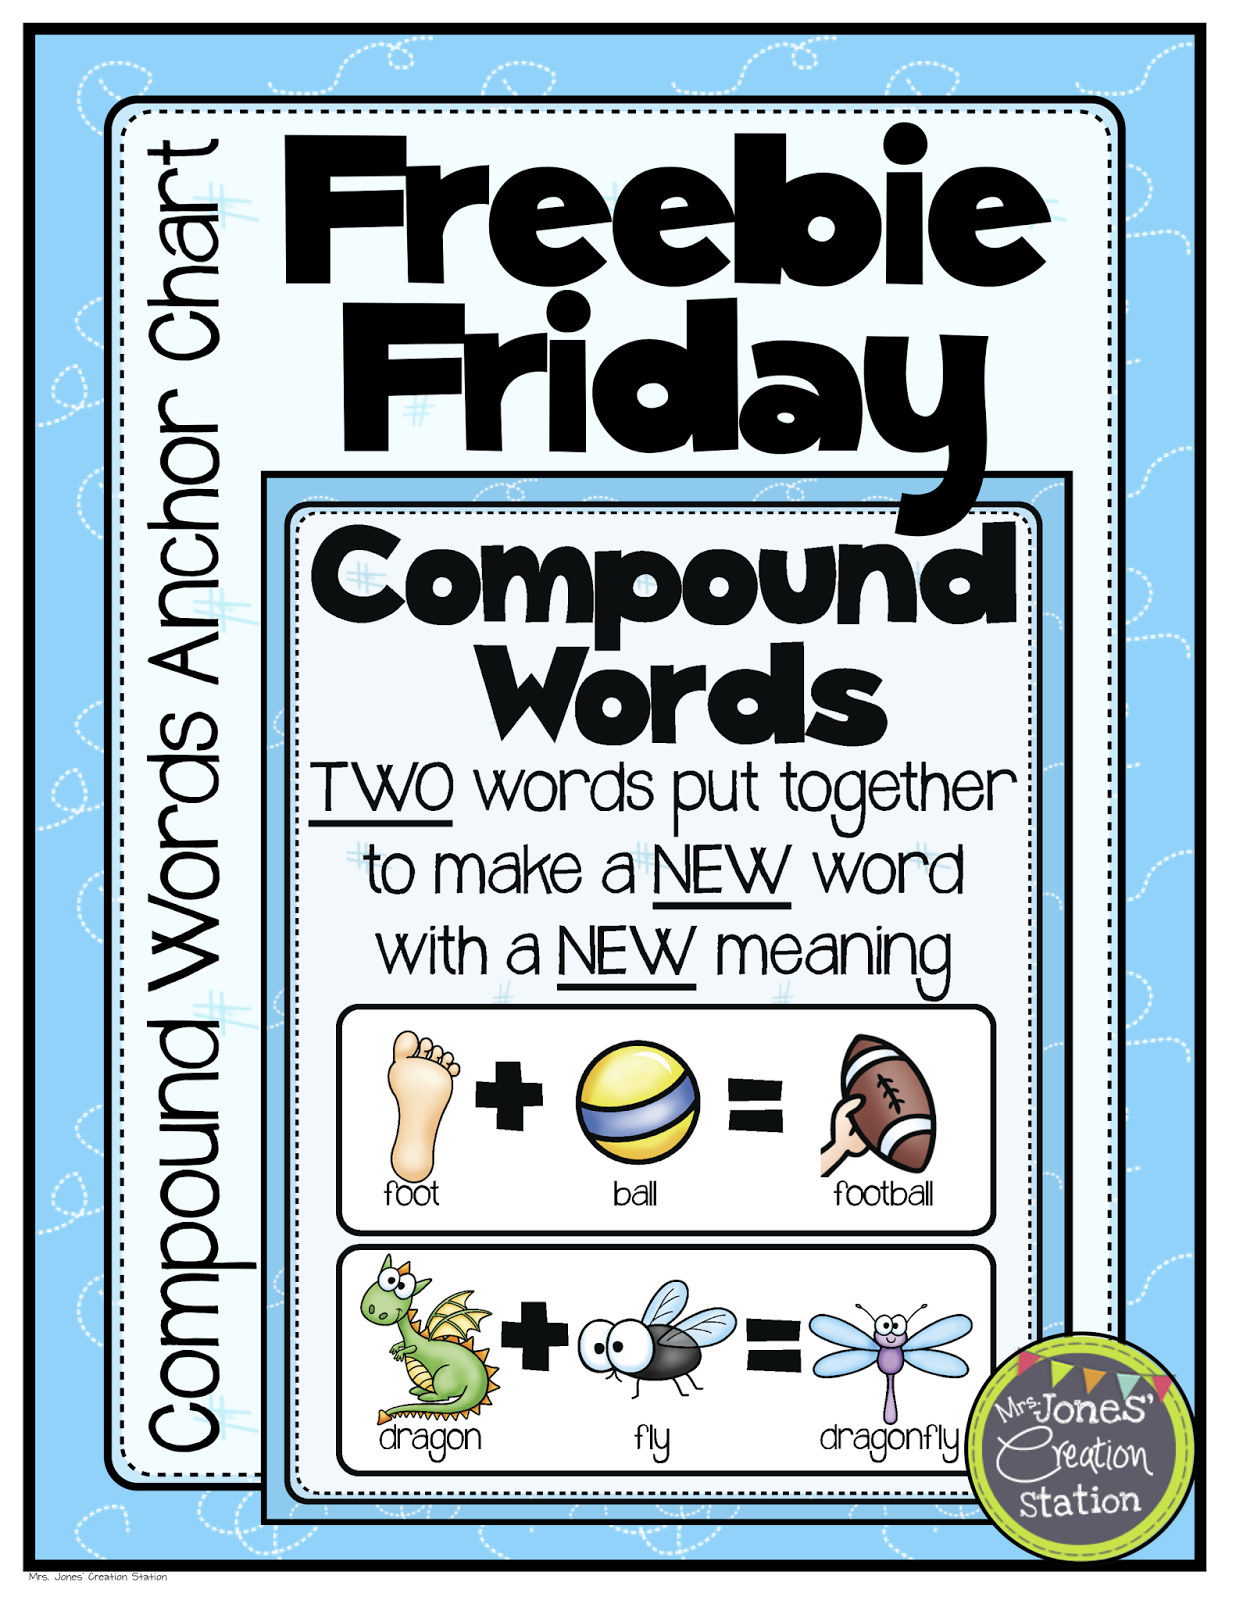 Freebie Friday Compound Words Anchor Chart Compound Words Anchor Chart Compound Words Compound Words Activities [ 1600 x 1236 Pixel ]